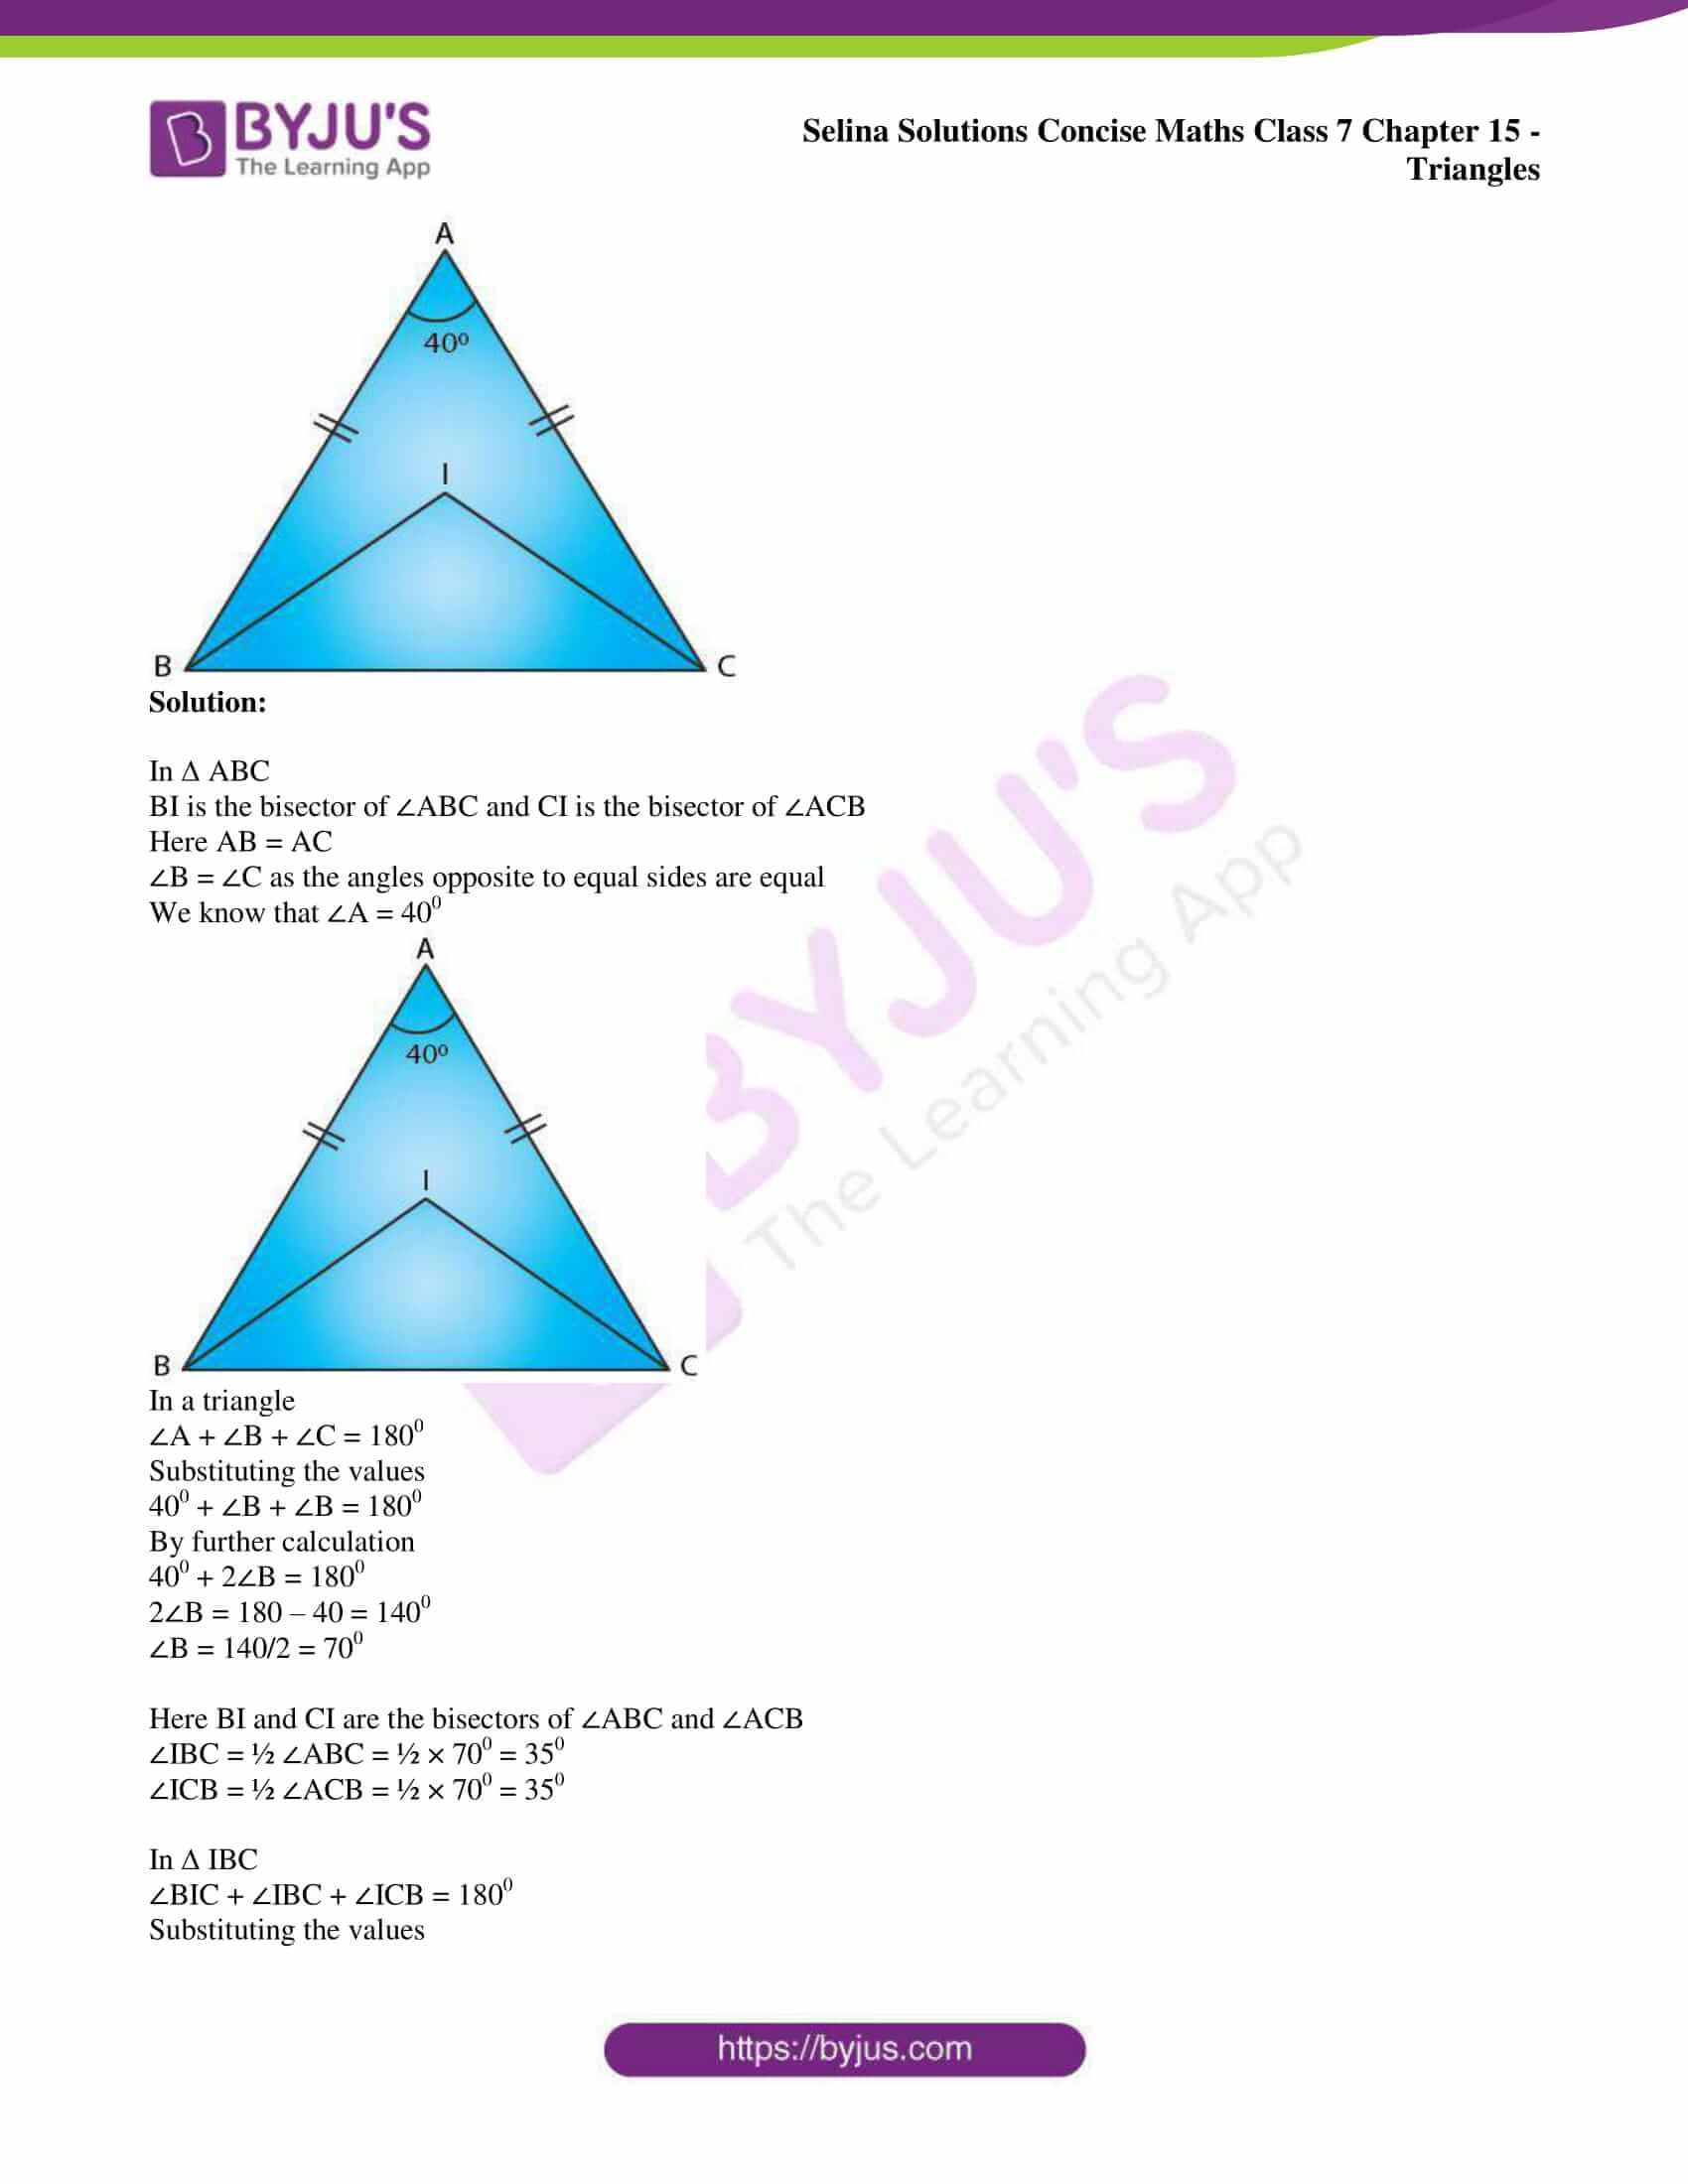 selina sol concise maths class 7 chapter 15 ex b 08